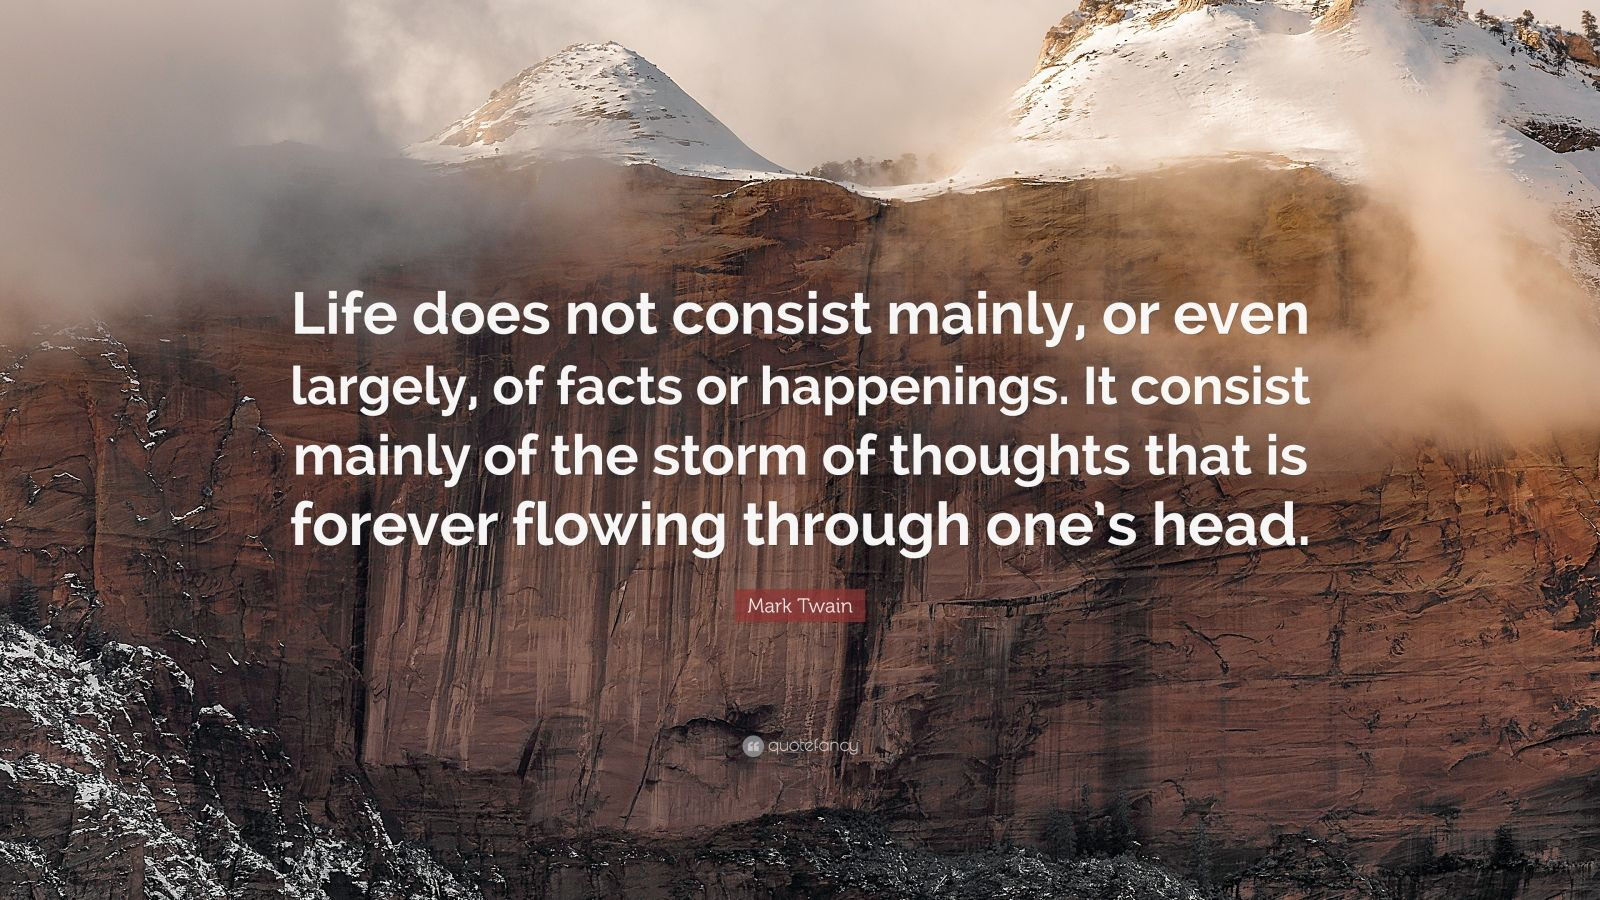 """Mark Twain Quote: """"Life does not consist mainly, or even largely, of facts or happenings. It consist mainly of the storm of thoughts that is forever flowing through one's head."""""""